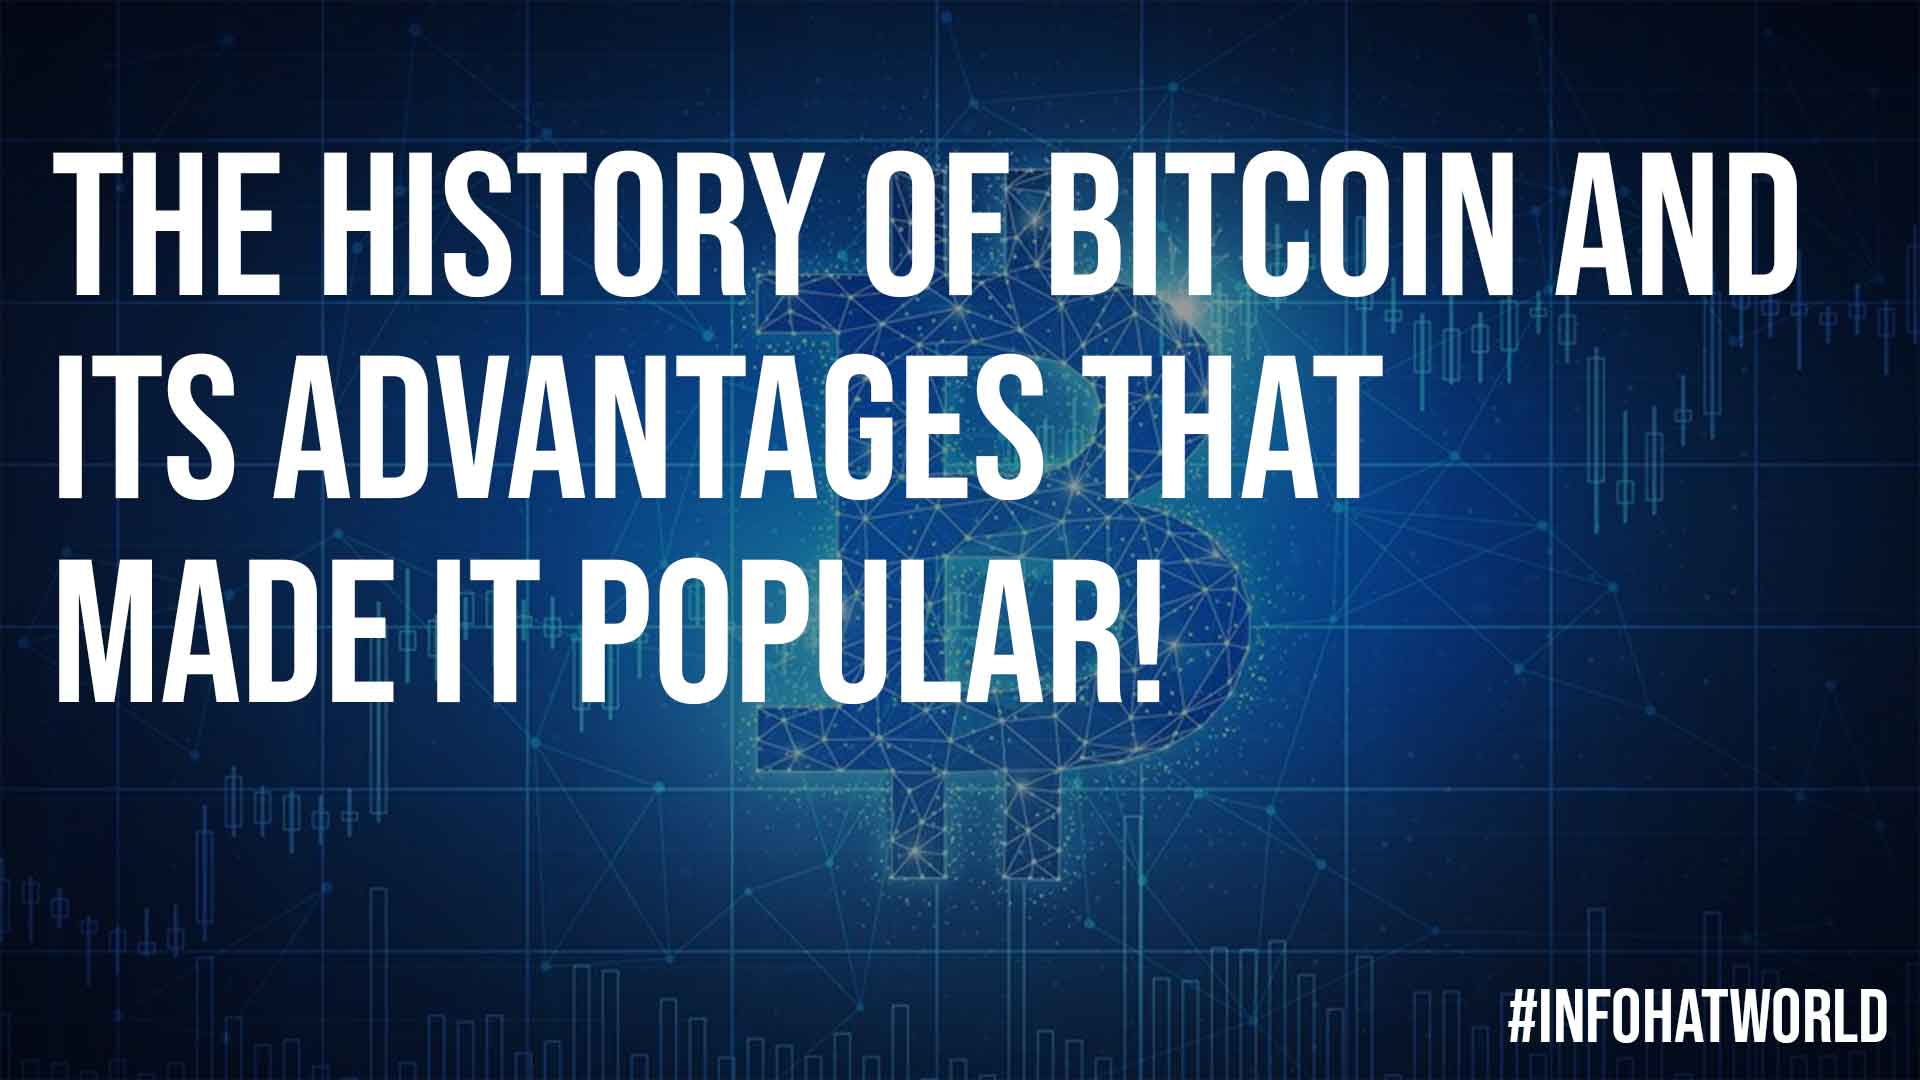 The History of Bitcoin and its Advantages That Made it Popular